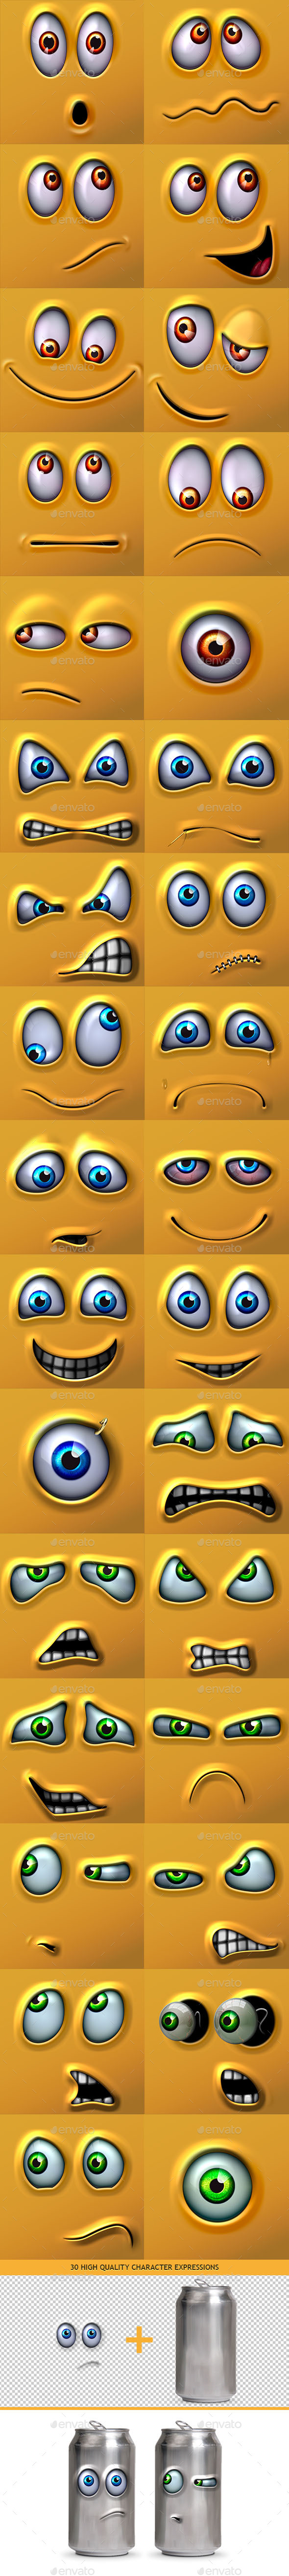 GraphicRiver Character Expressions Bundle 10343000